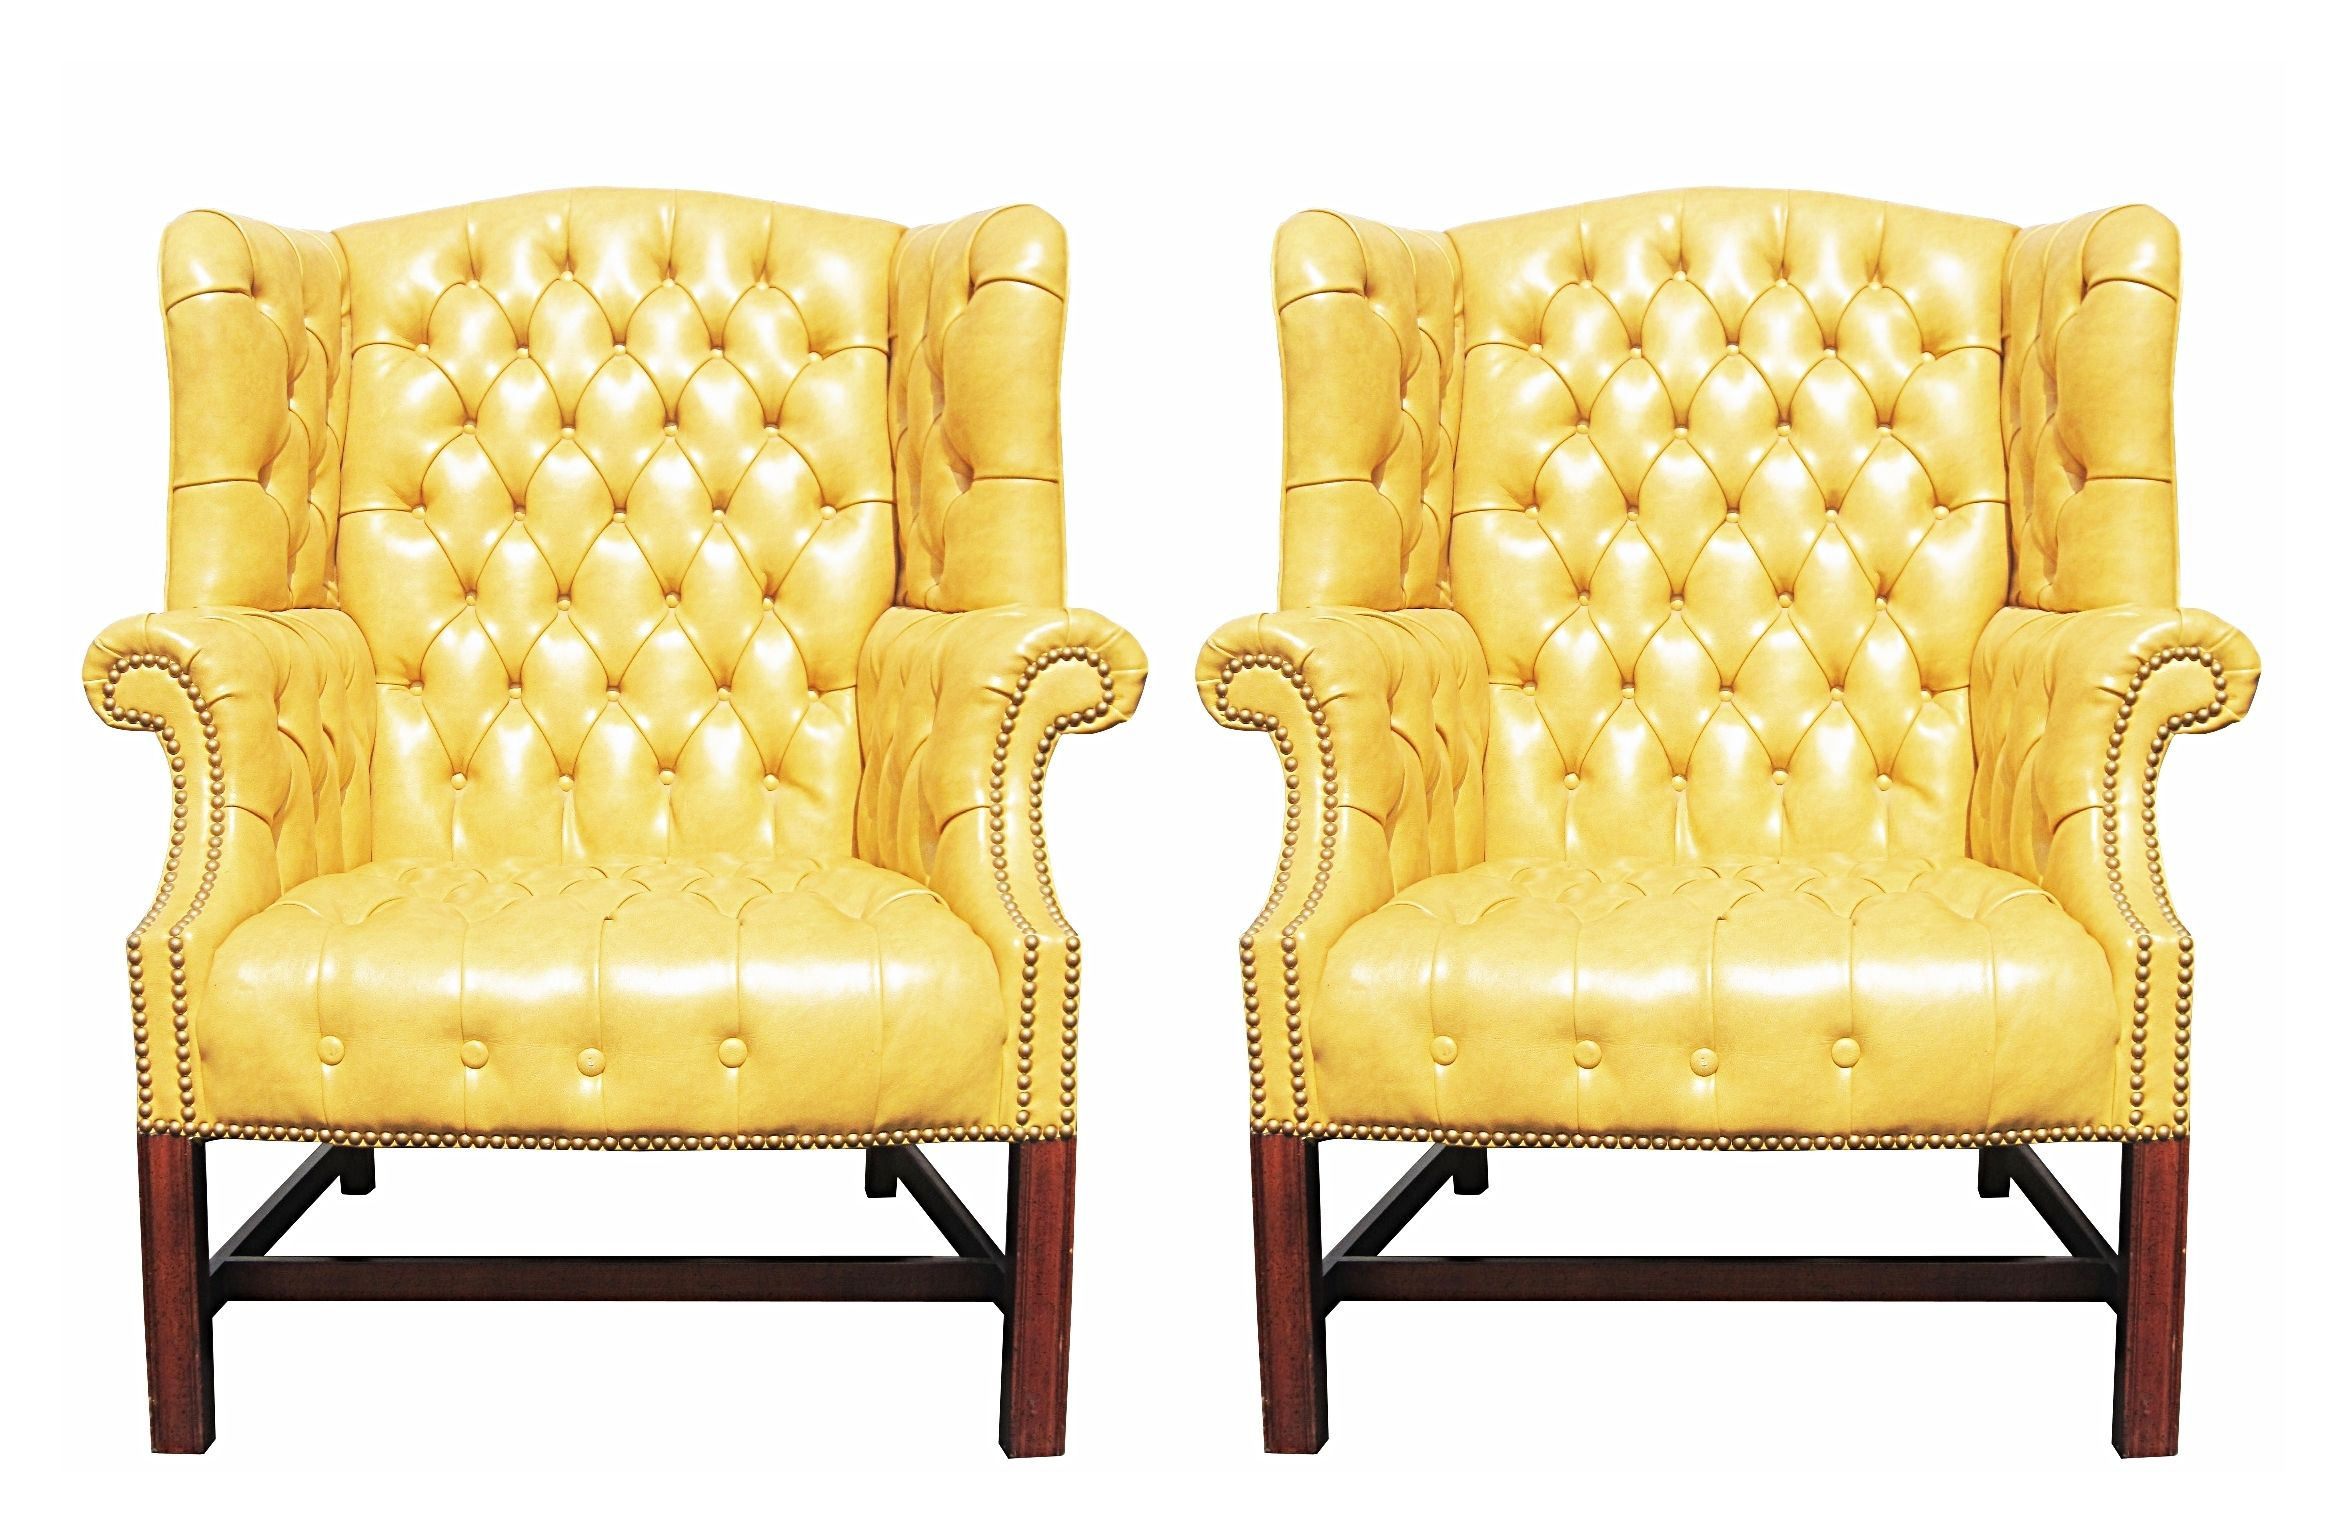 Pair of Wormley Style Wingback Chairs in Yellow Naugahyde